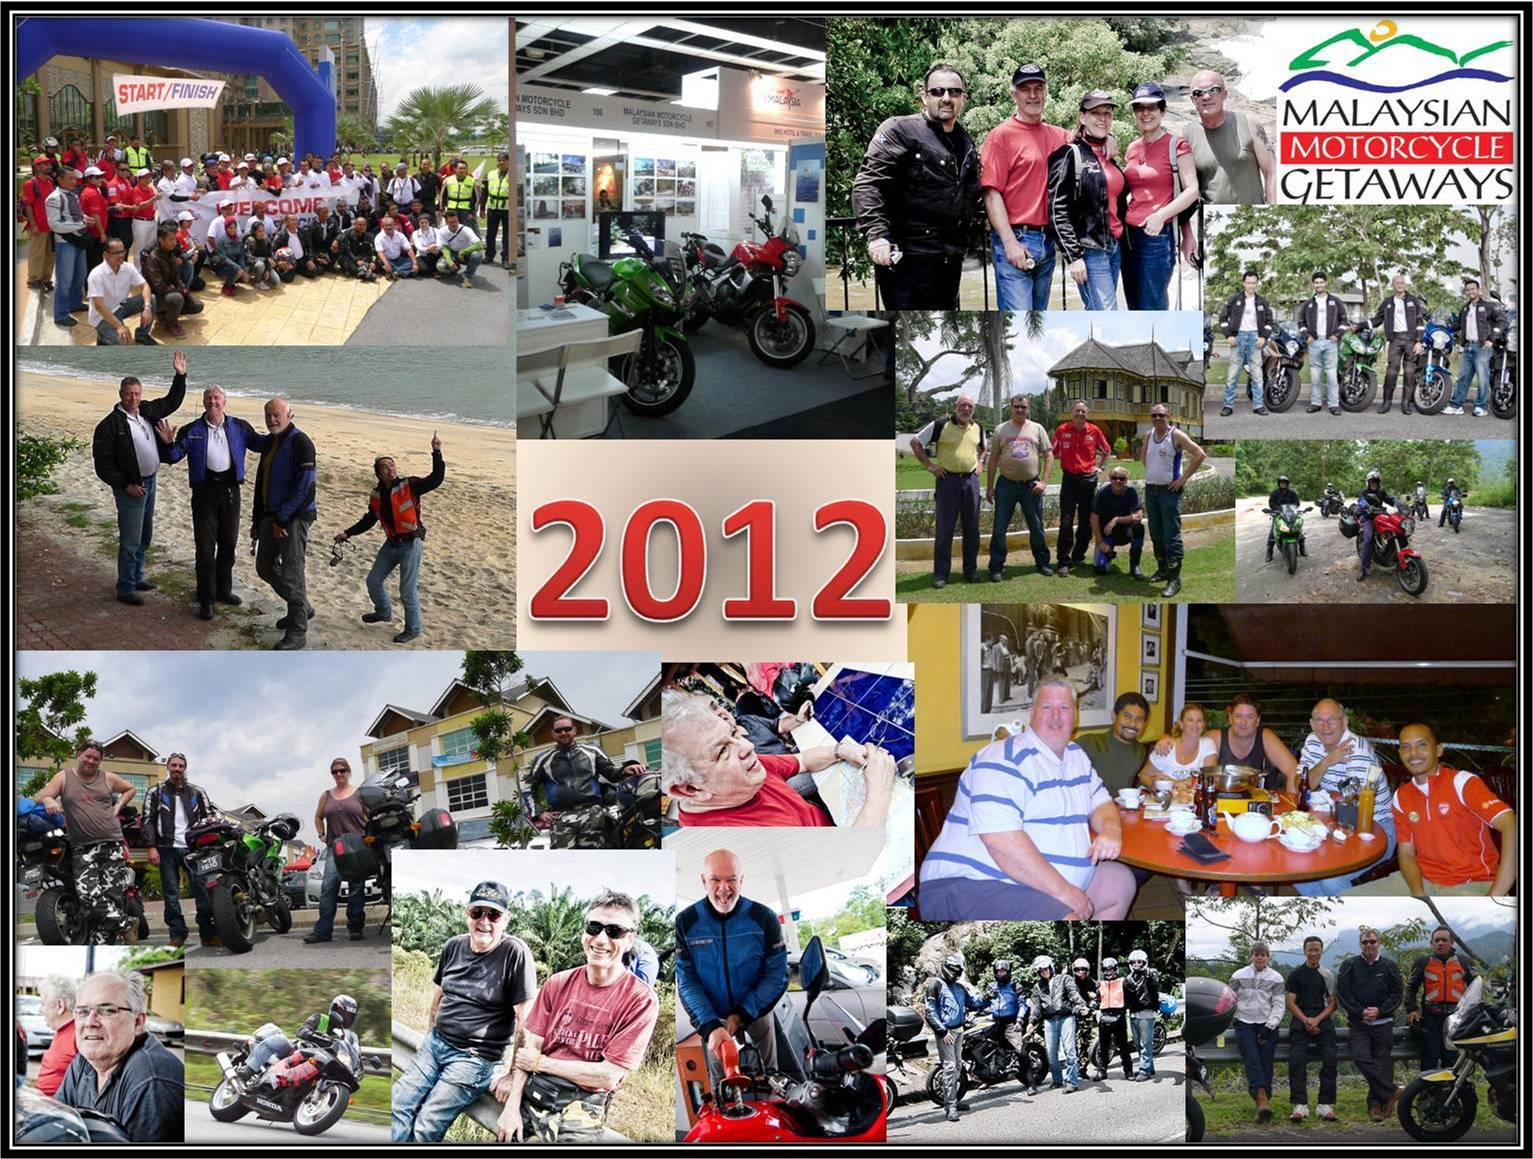 2012 what a great year